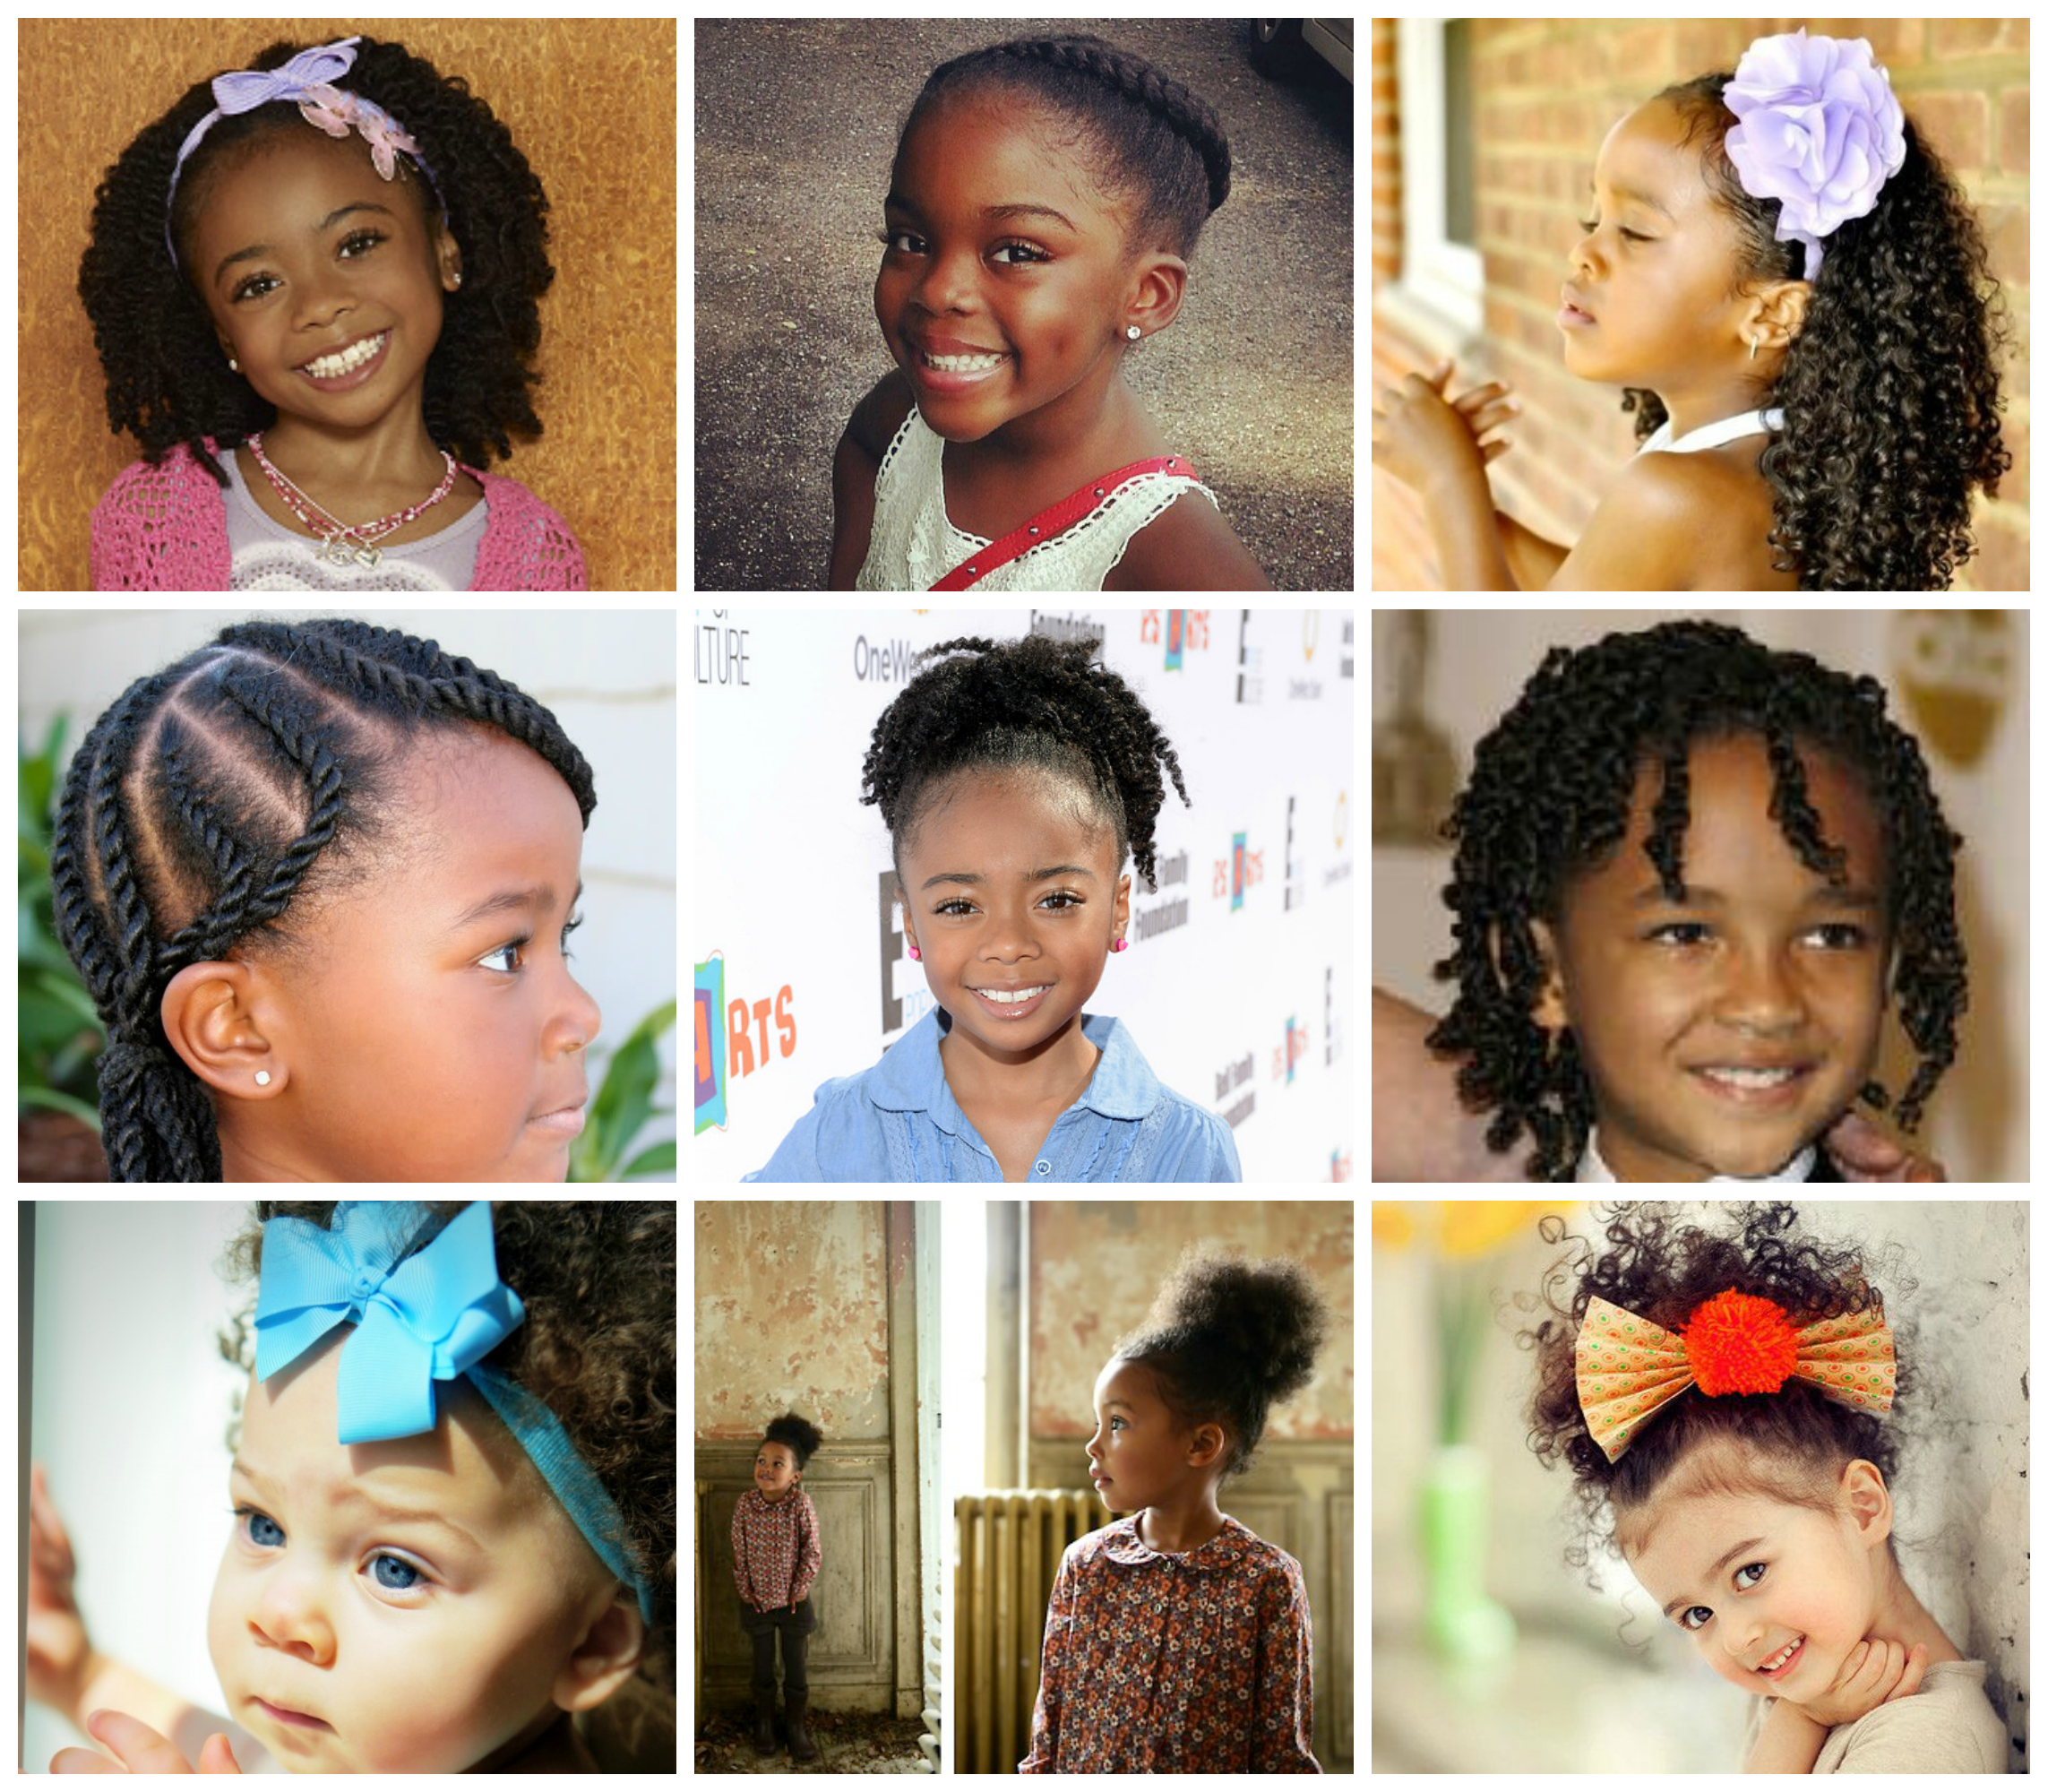 Back To School Hairstyle Ideas For Kids and Teens